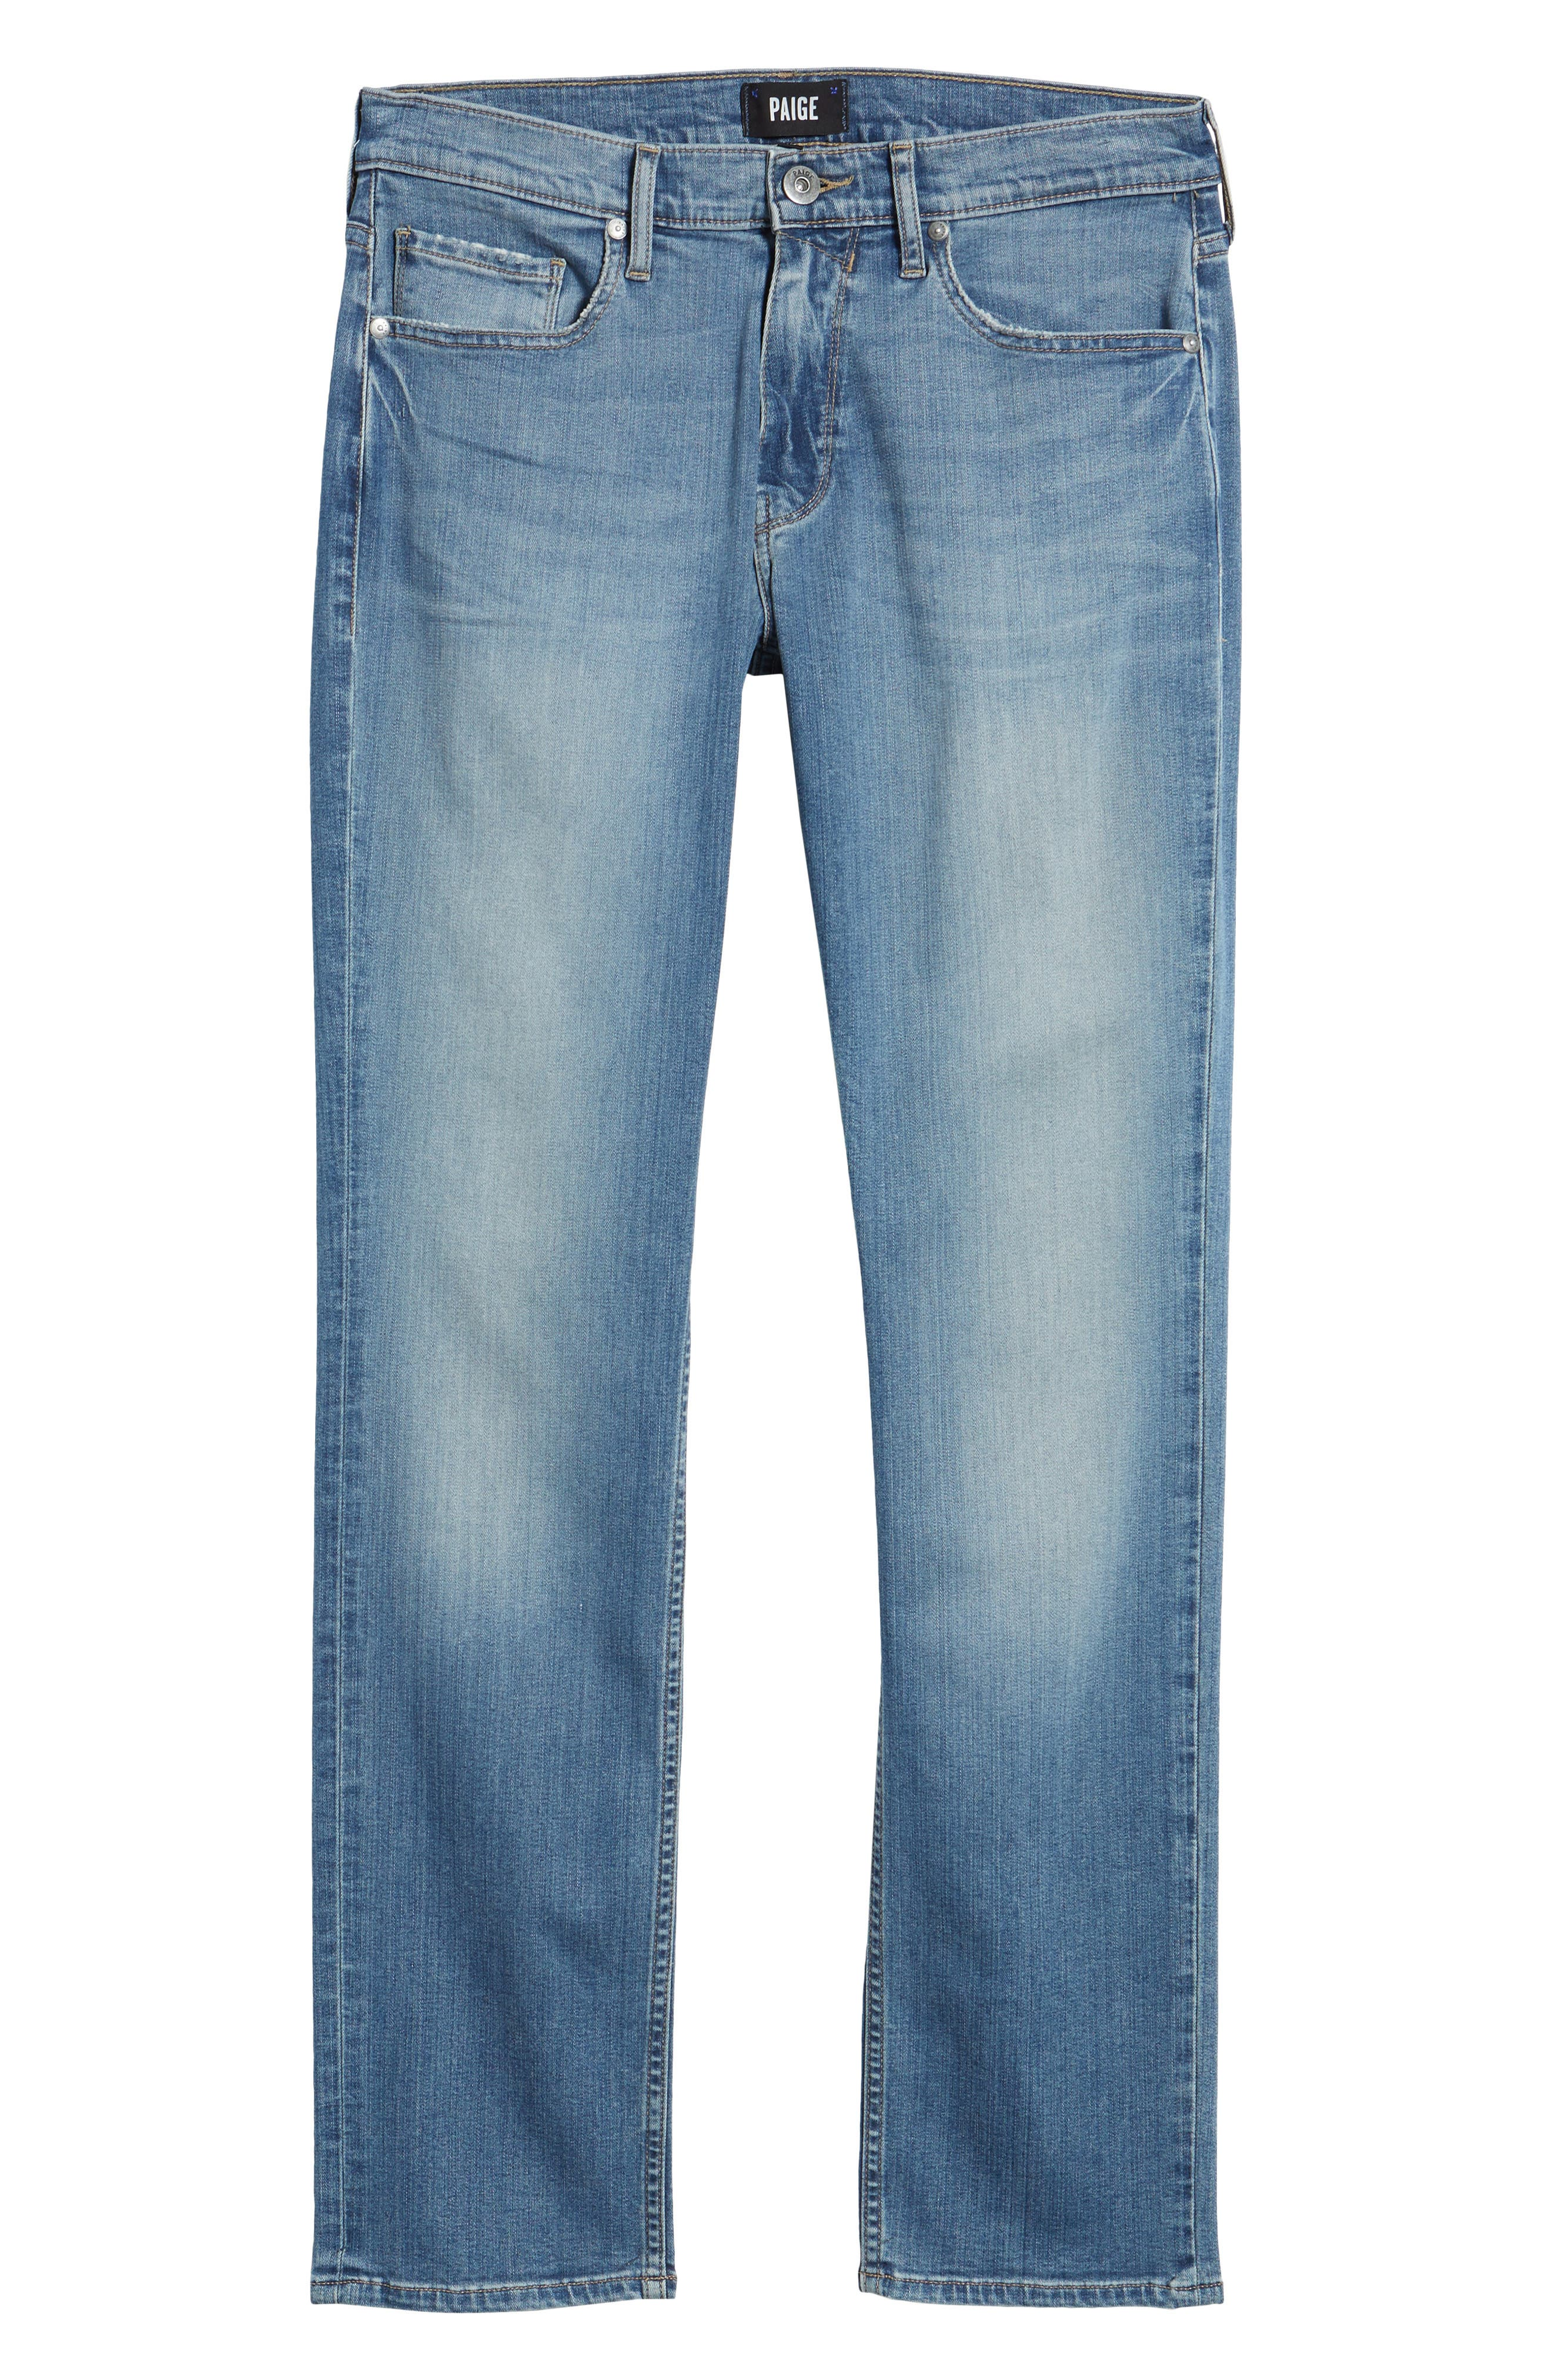 Transcend - Federal Slim Straight Fit Jeans,                             Alternate thumbnail 6, color,                             400